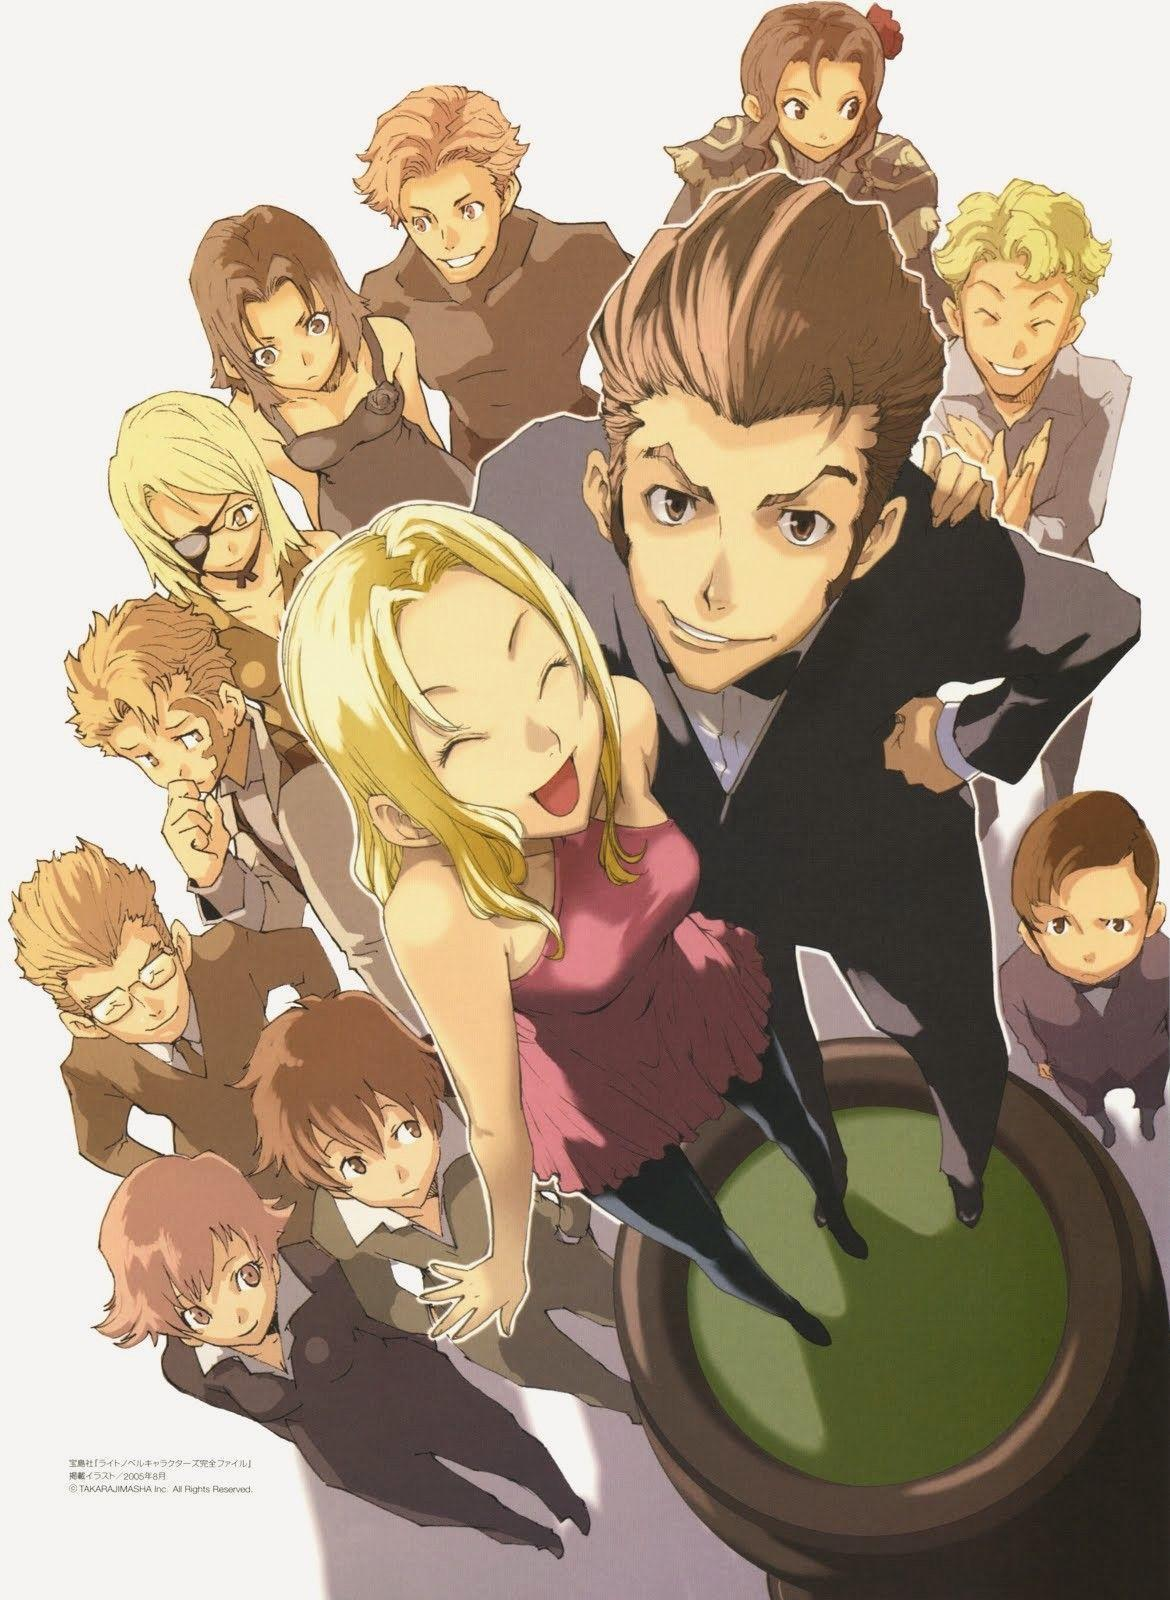 Baccano Wallpapers Wallpaper Cave Images, Photos, Reviews